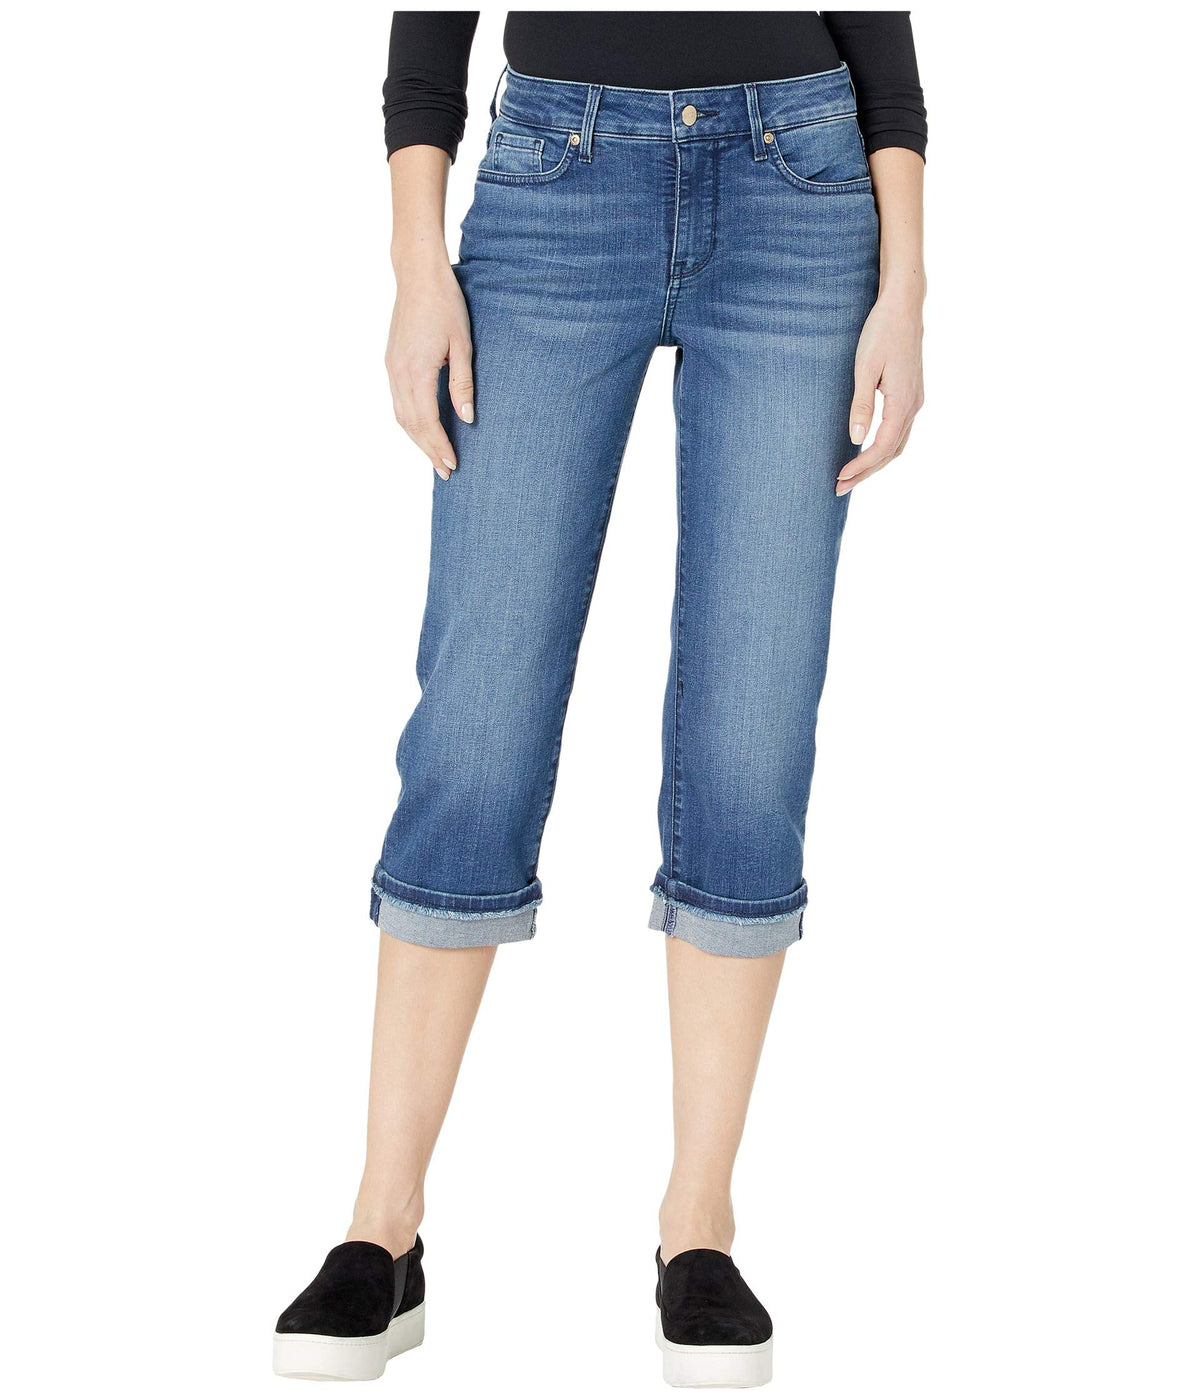 Marilyn Crop Jeans with Frayed Cuffs in Meloy